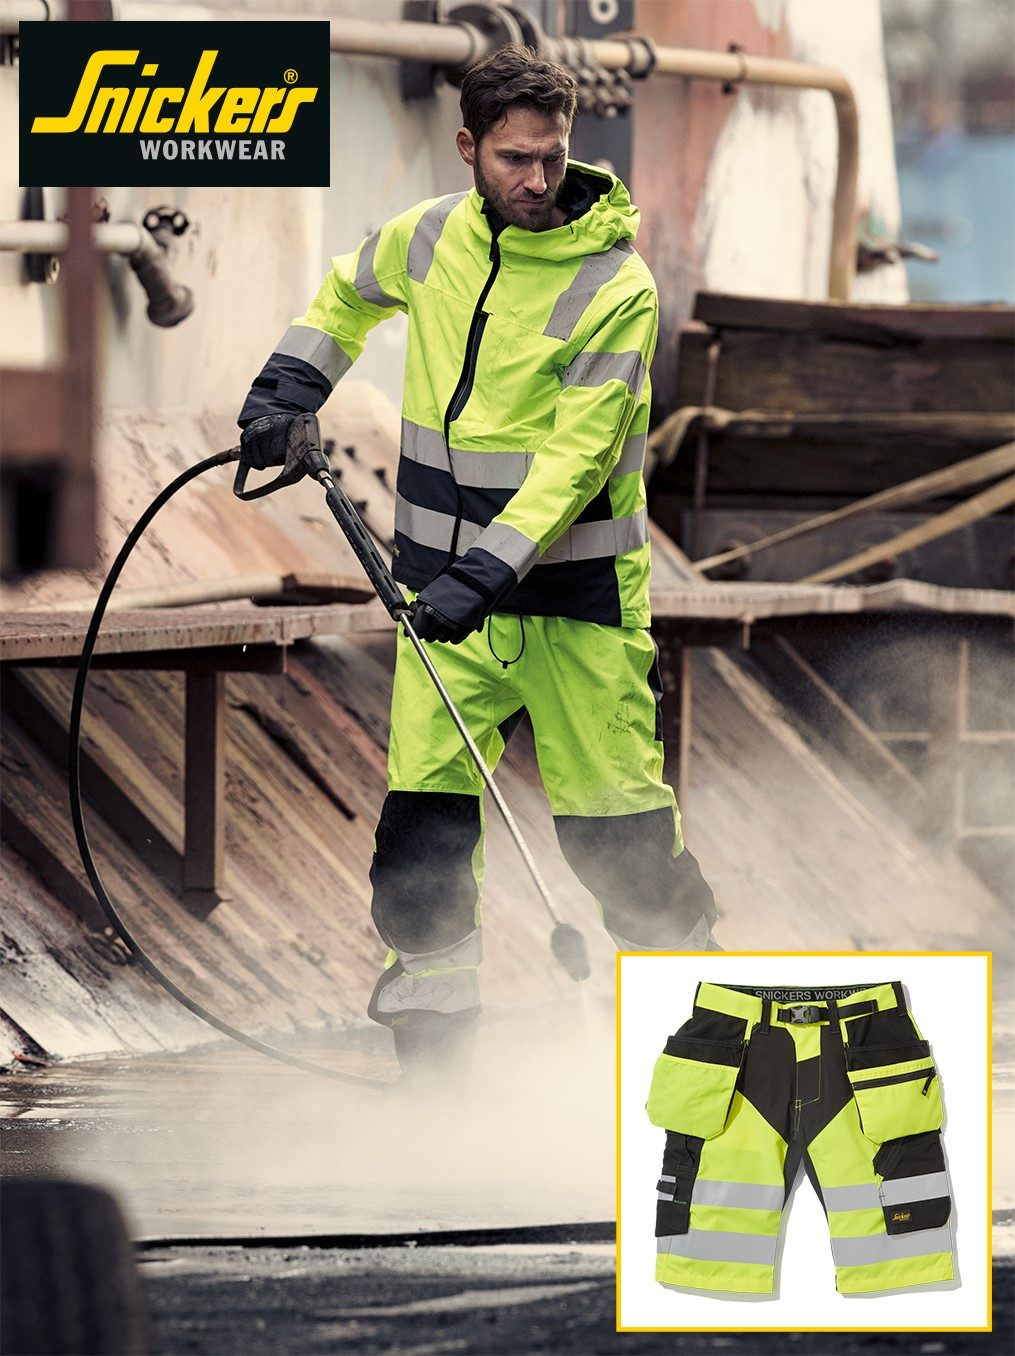 PCIAW - Professional Clothing Industry Association Worldwide | Snickers pairs functionality with comfort for new Hi-Vis Range | Industry News